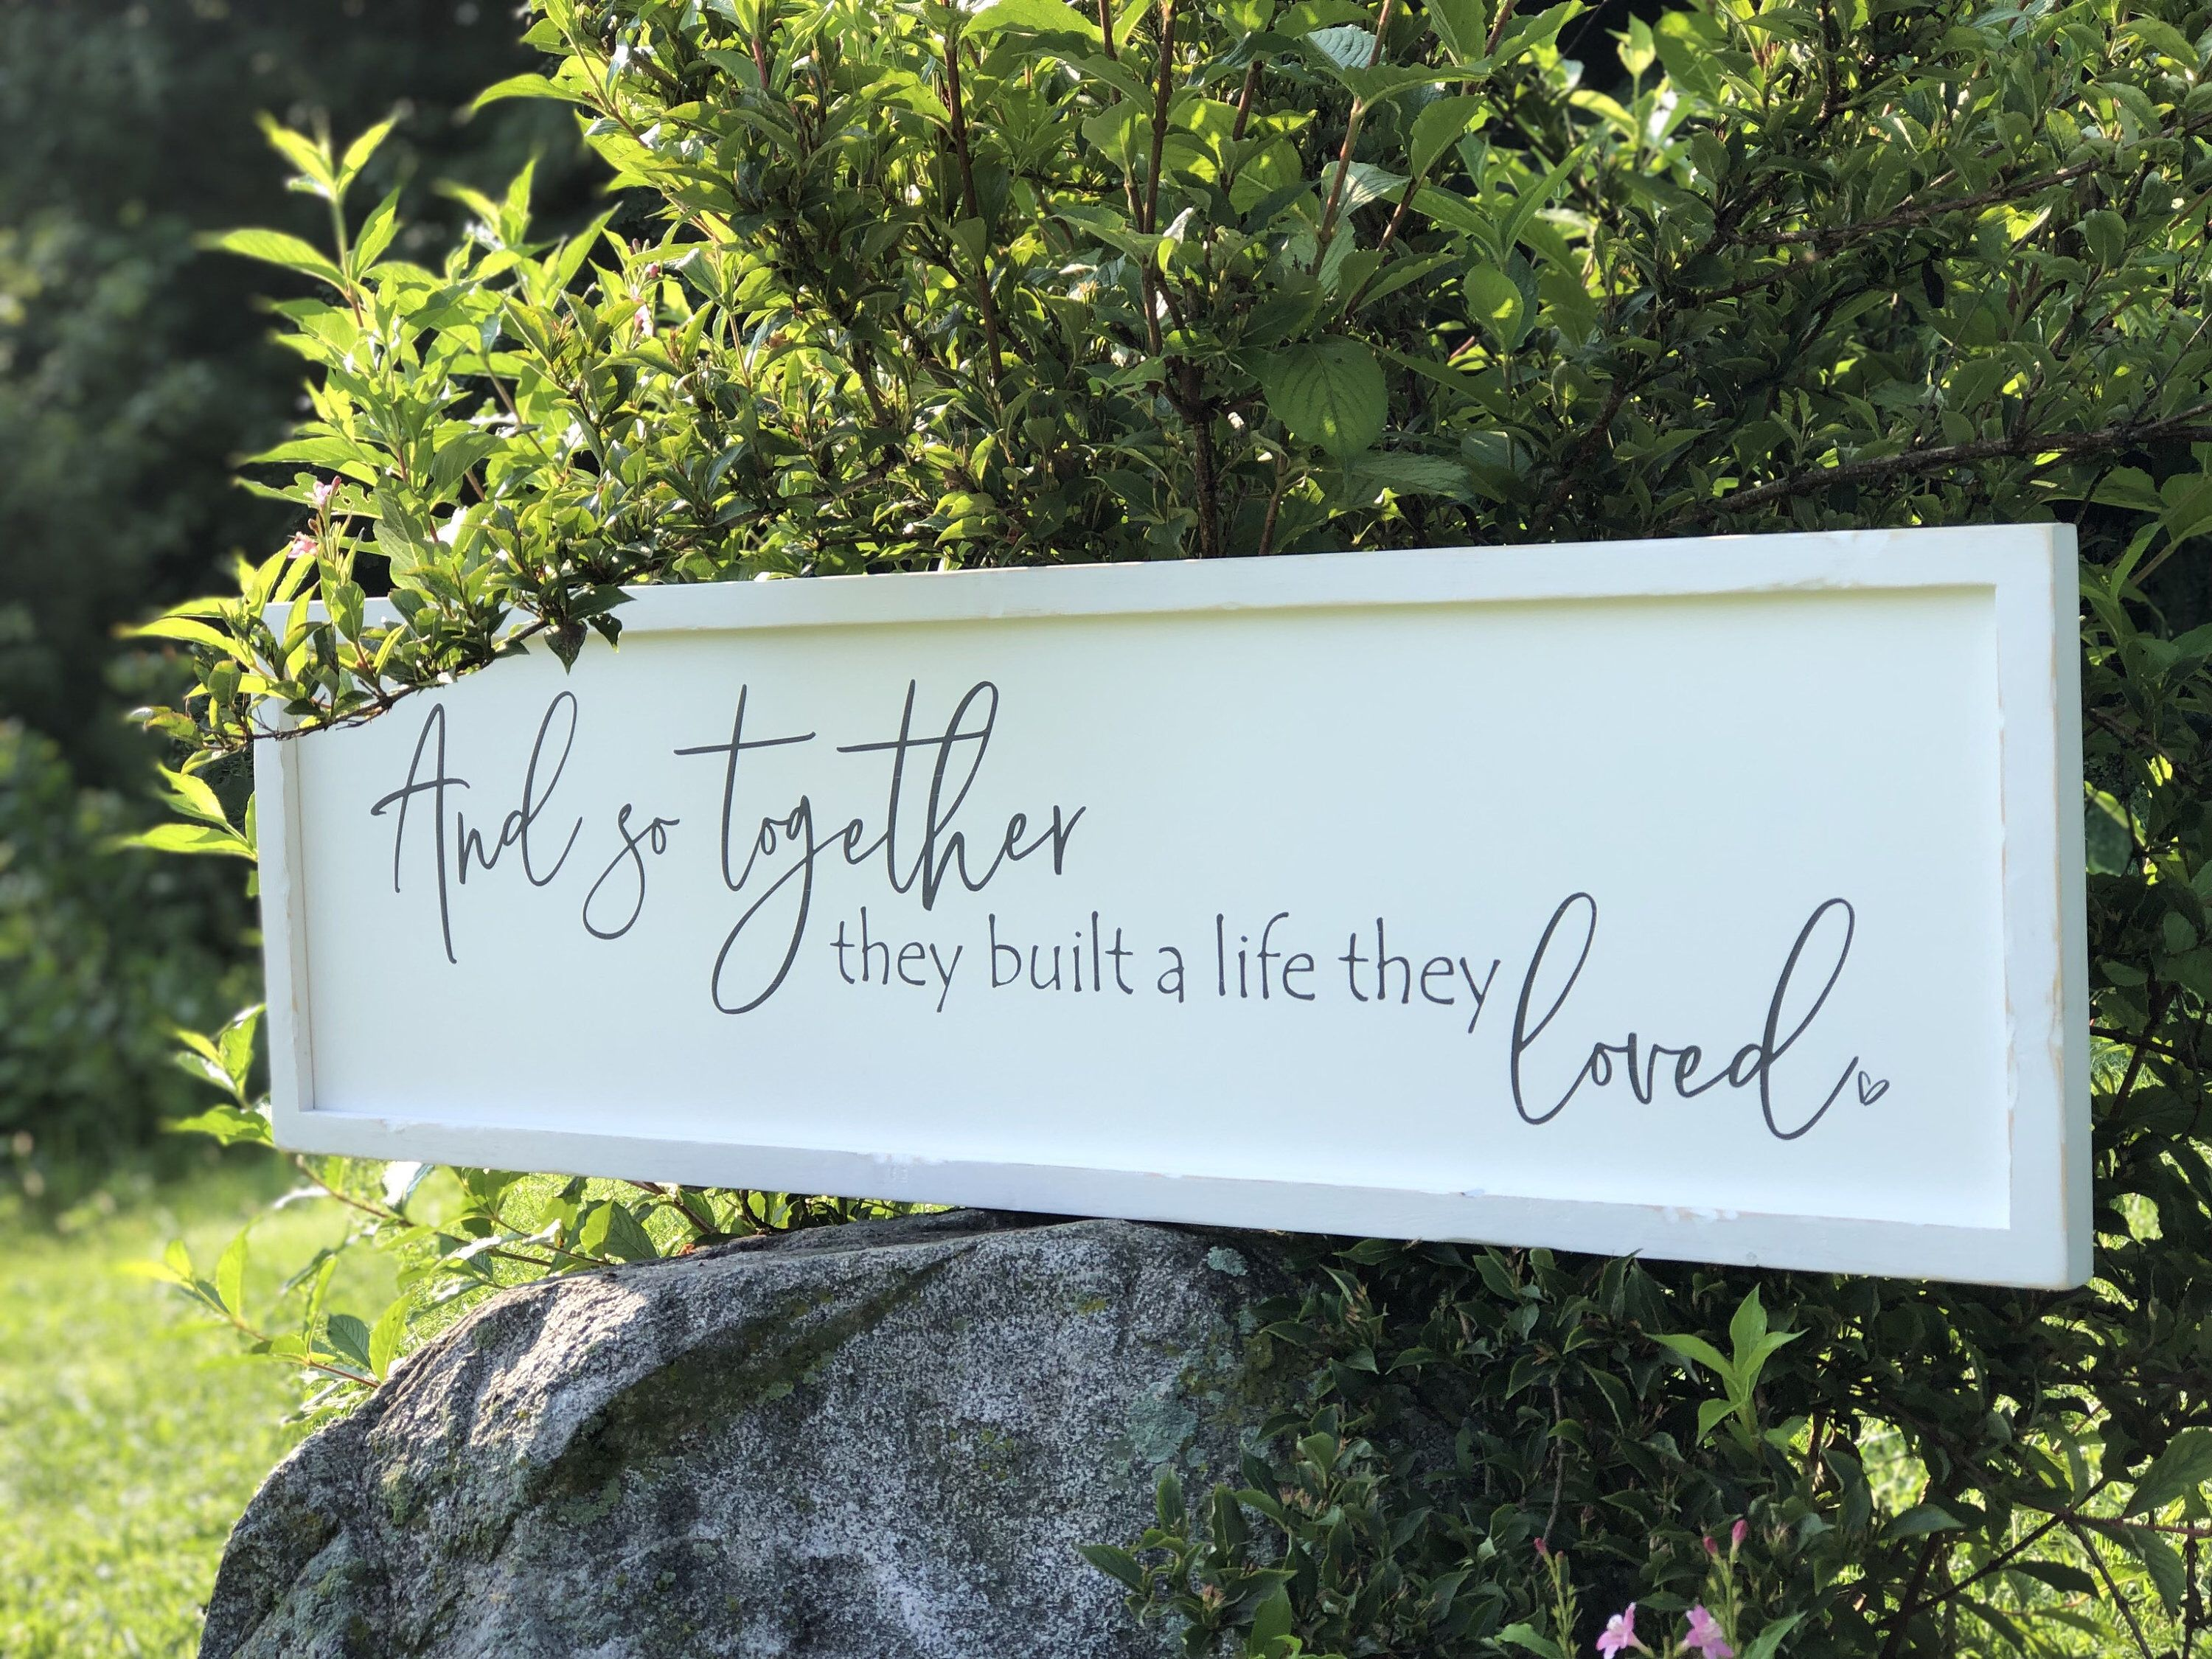 Master bedroom art above bed  And so together they built a life they loved sign  above bed sign